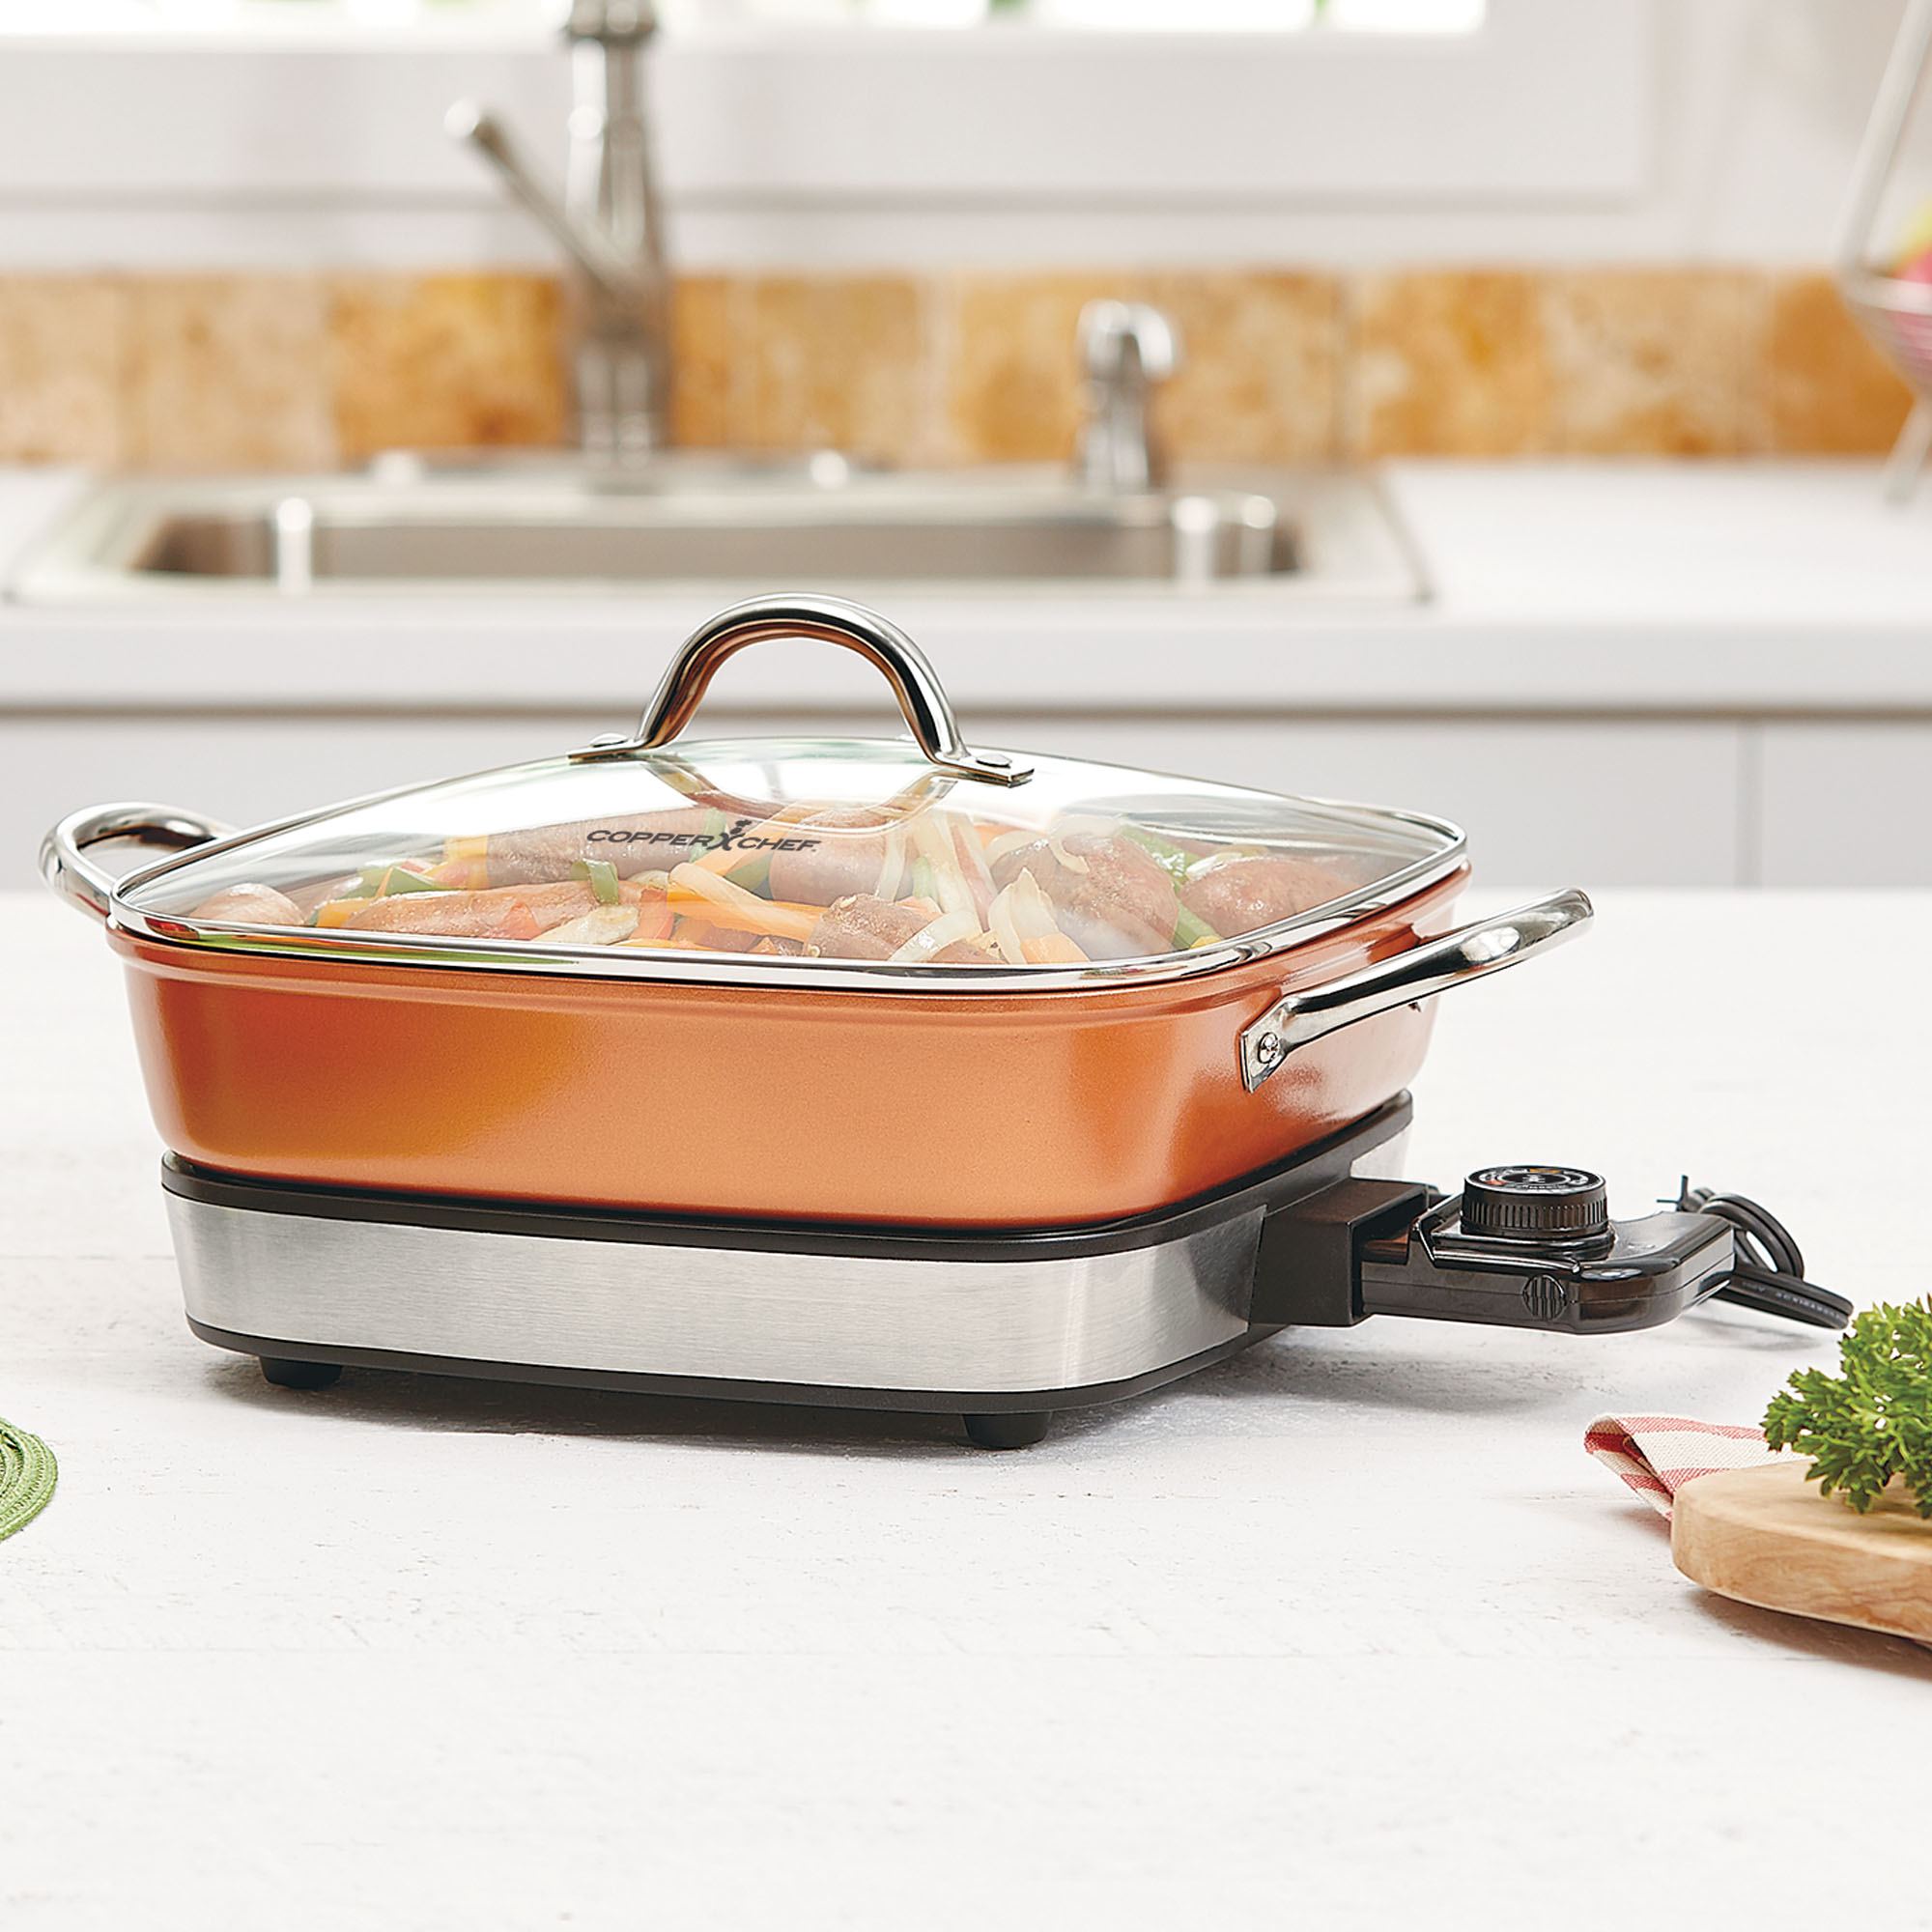 Copper Chef 12 Removable Electric Skillet Walmart Com